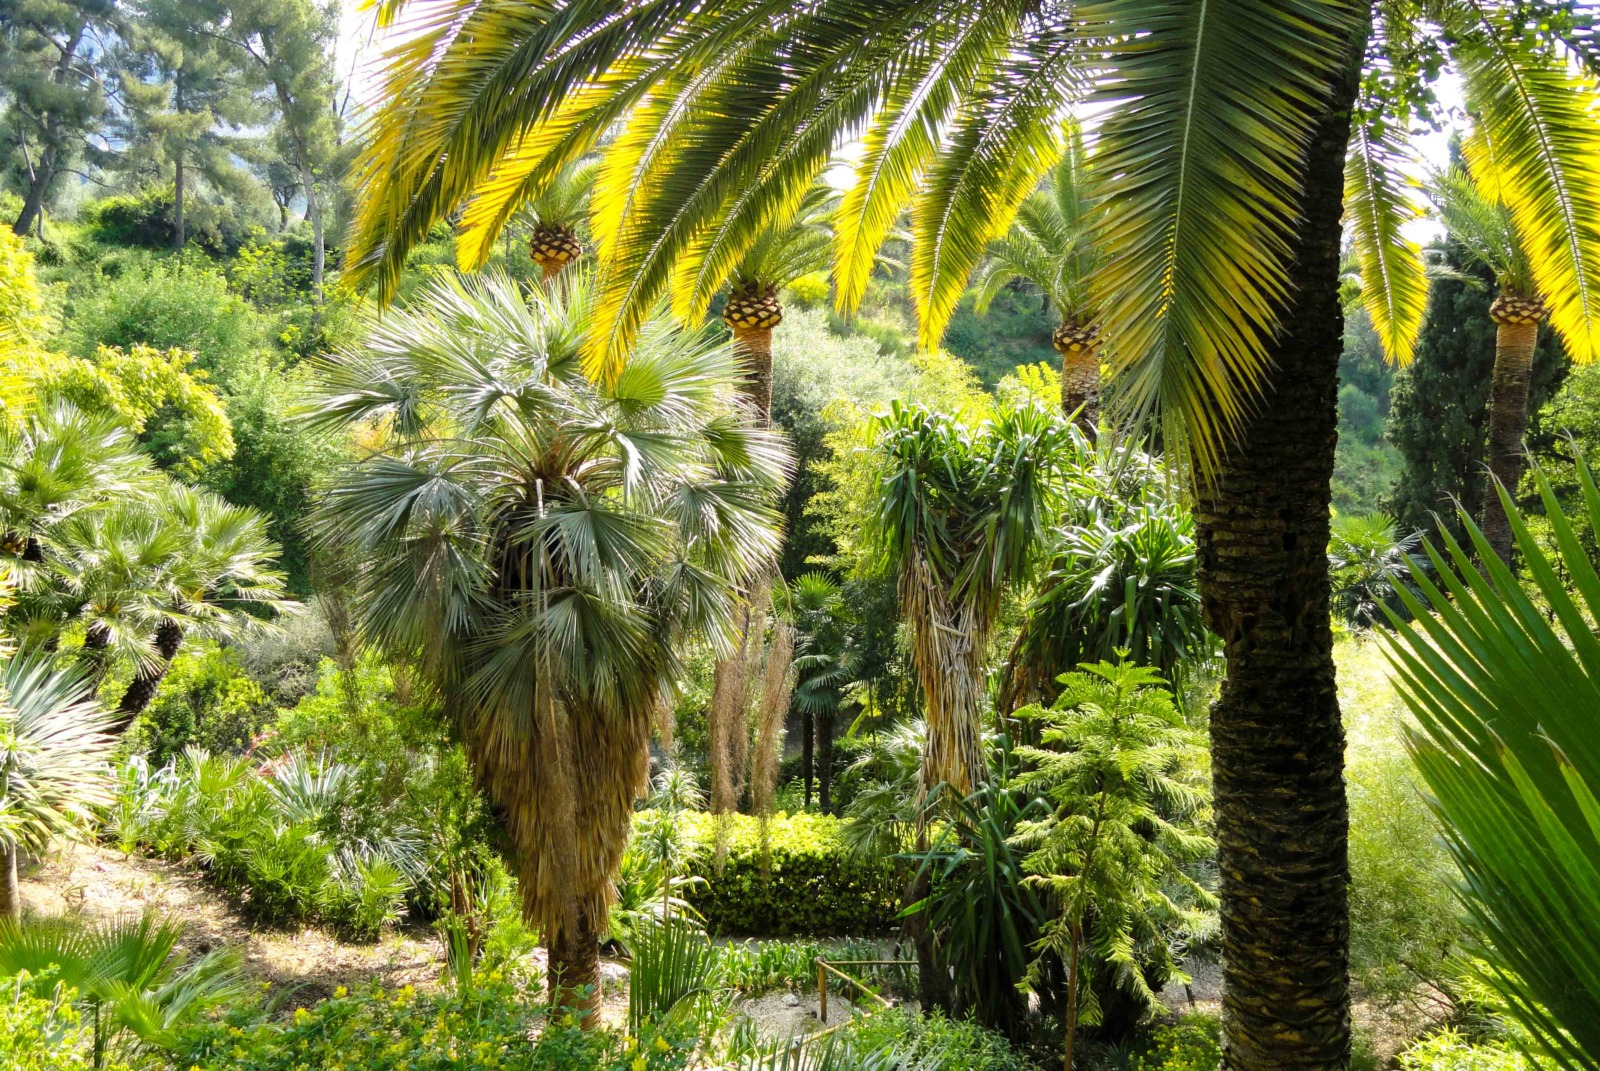 Menton's Parks and Gardens - Val Rahmeh. Photo: Daderot (Public Domain)